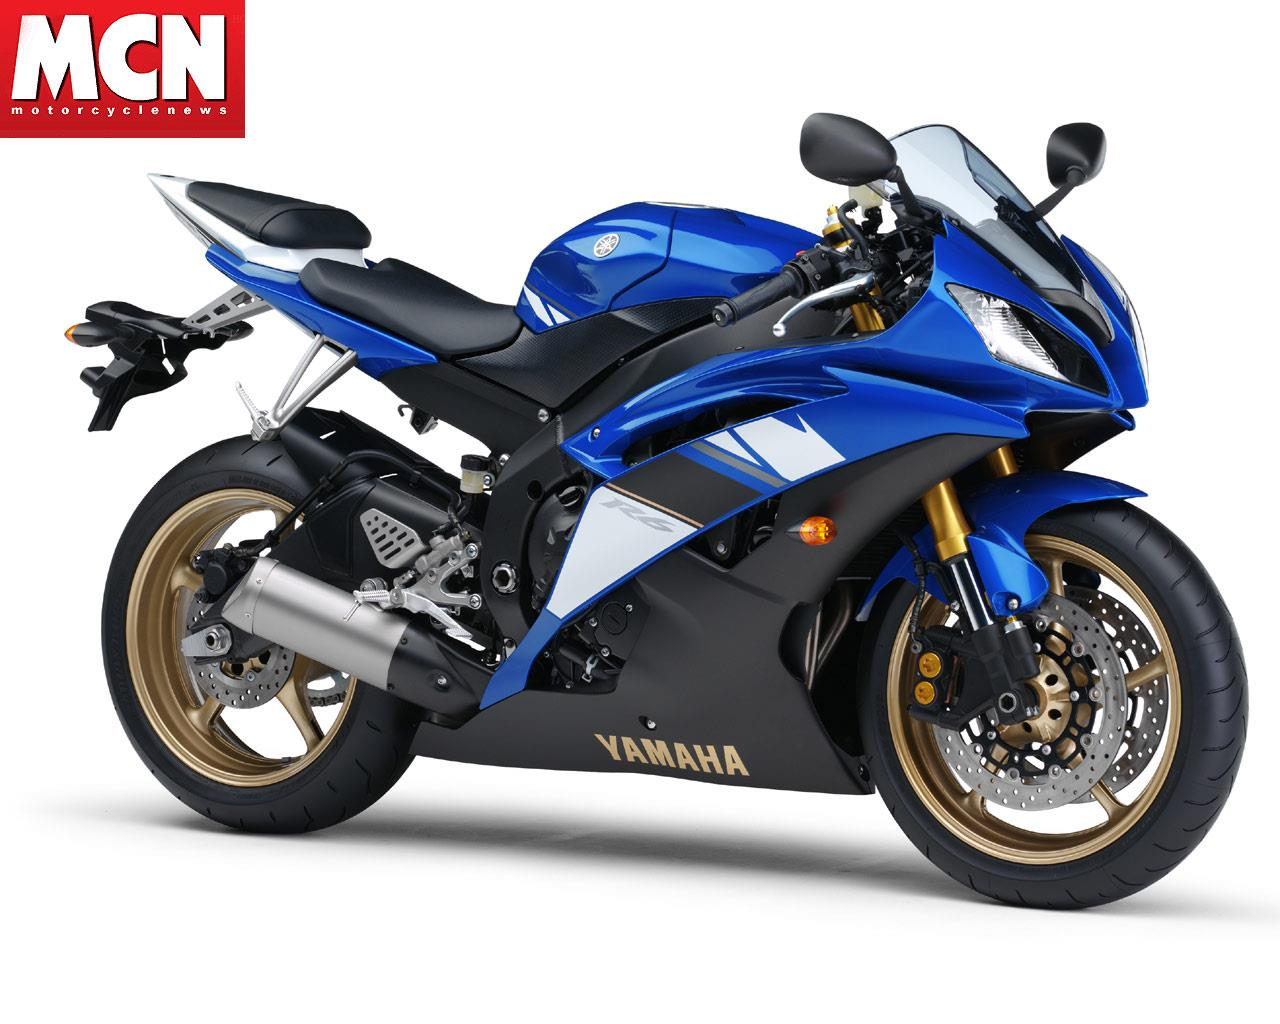 the 2008 yamaha r6 motorcycle revealed mcn. Black Bedroom Furniture Sets. Home Design Ideas